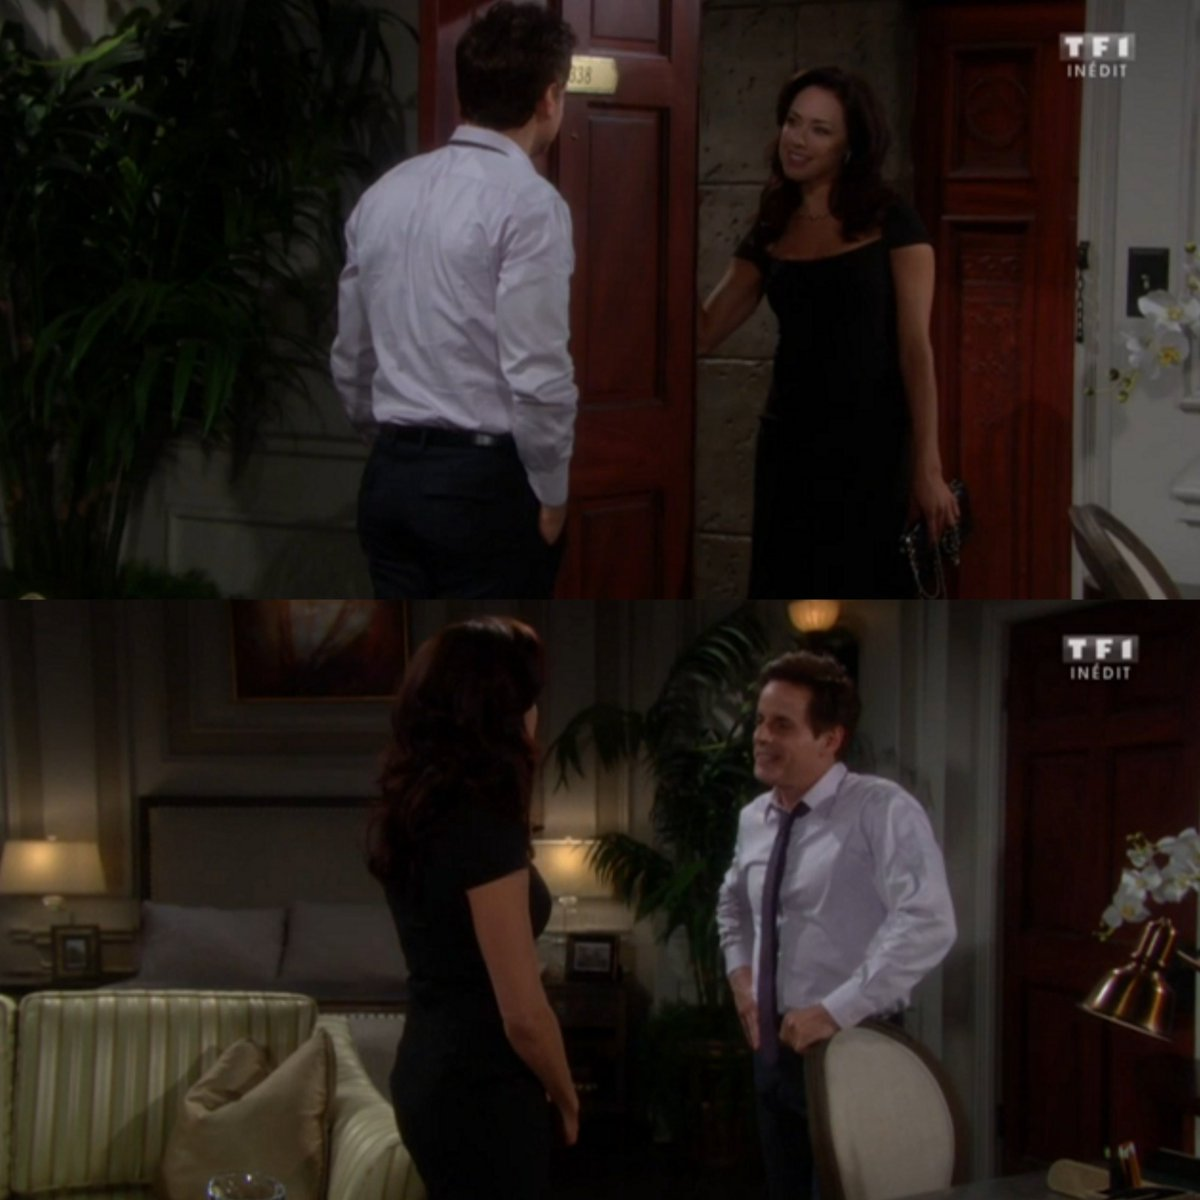 INCROYABLE SCENES DANS LES FEUX DE LAMOUR ! Wonderful, Amazing Moving and Memorable. The best scenes of all episodes with @CJLeBlanc @MyLindseyMcKeon #YR #YR45 #lesfeuxdelamour #France